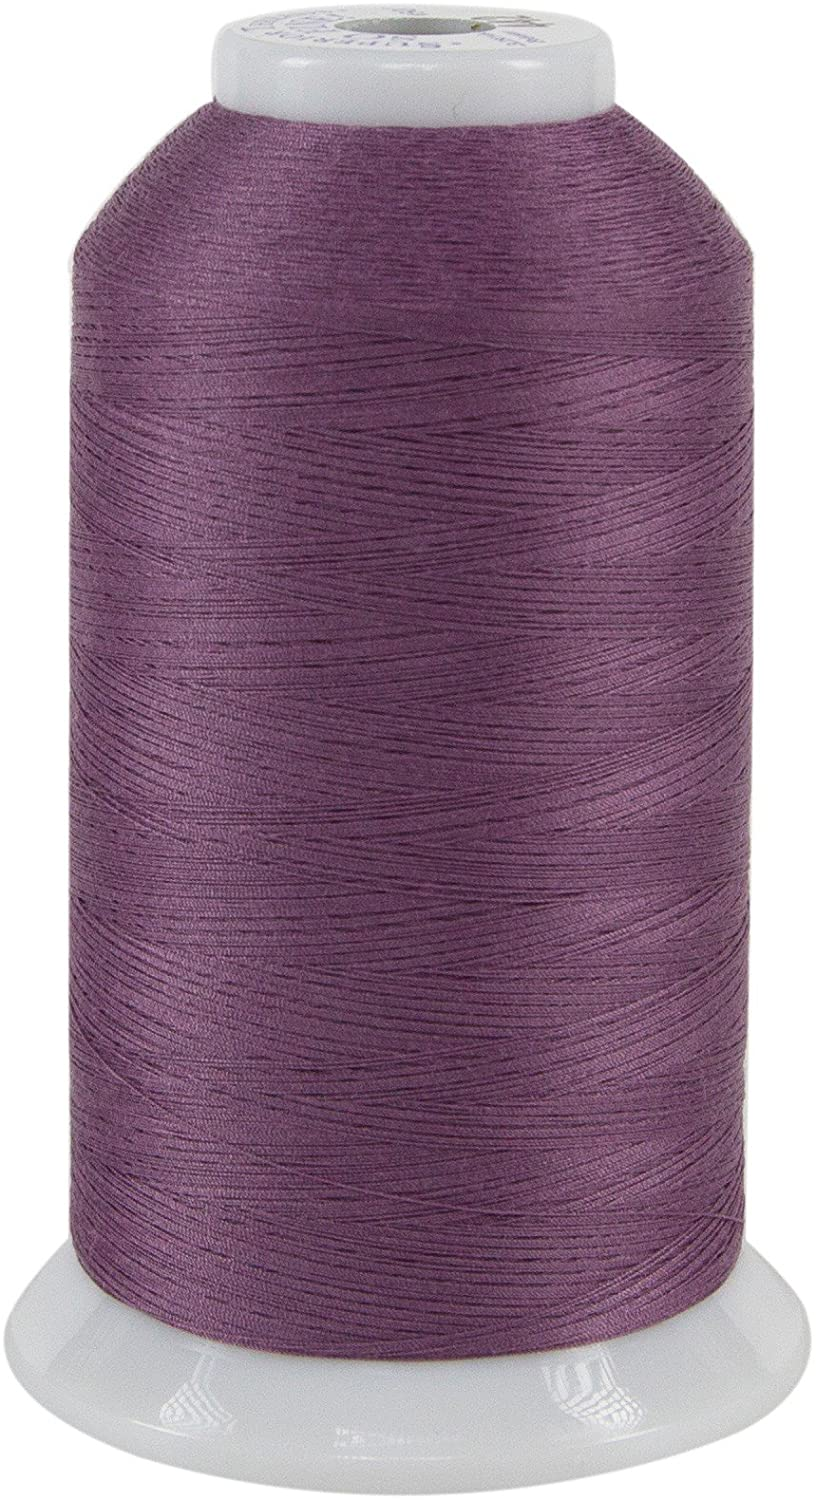 Superior Threads 11602-442 So Fine Thistle 3-Ply 50W Polyester Thread, 3280 yd